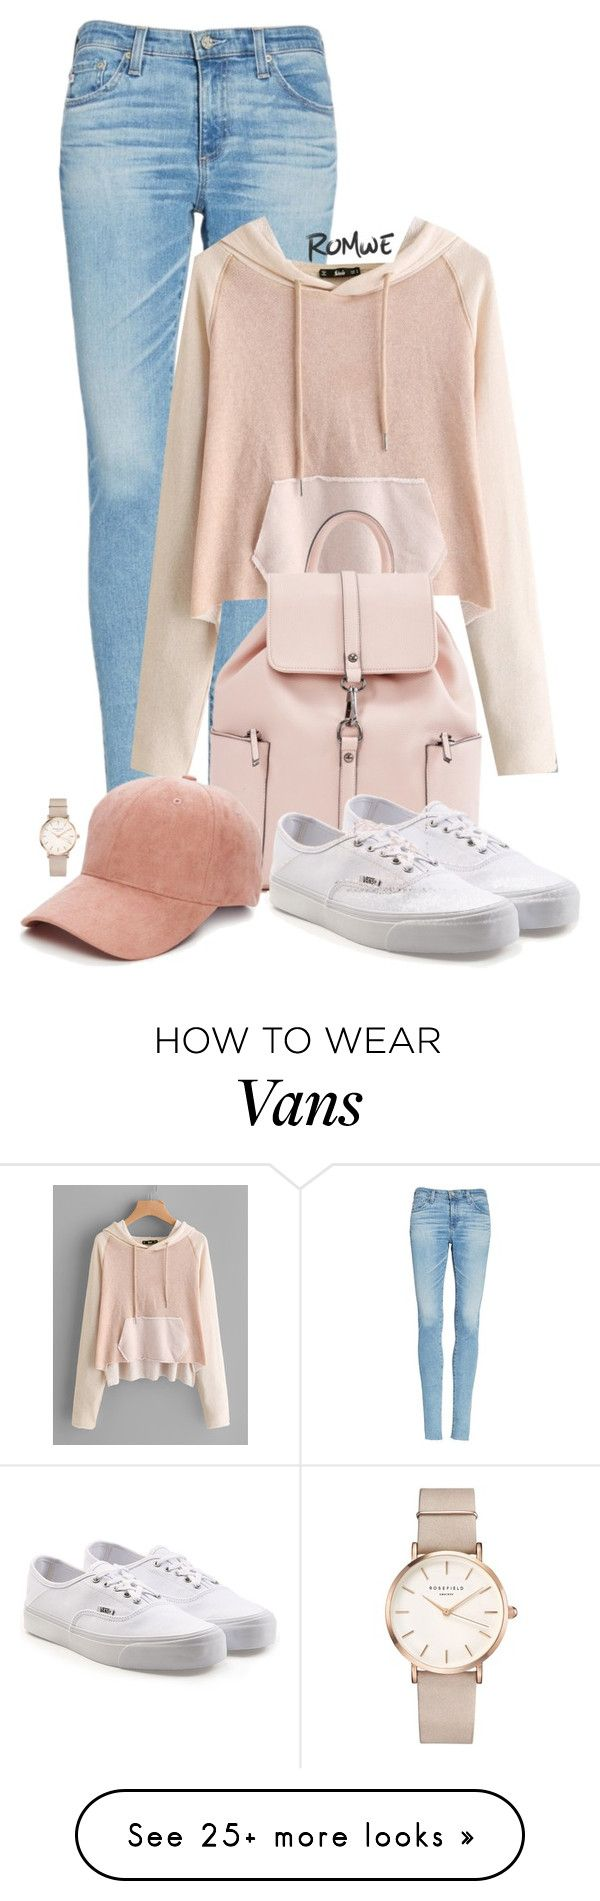 """Sporty look"" by tamaralovepolyvore on Polyvore featuring AG Adriano Goldschmied, Collection XIIX, Vans and ROSEFIELD"